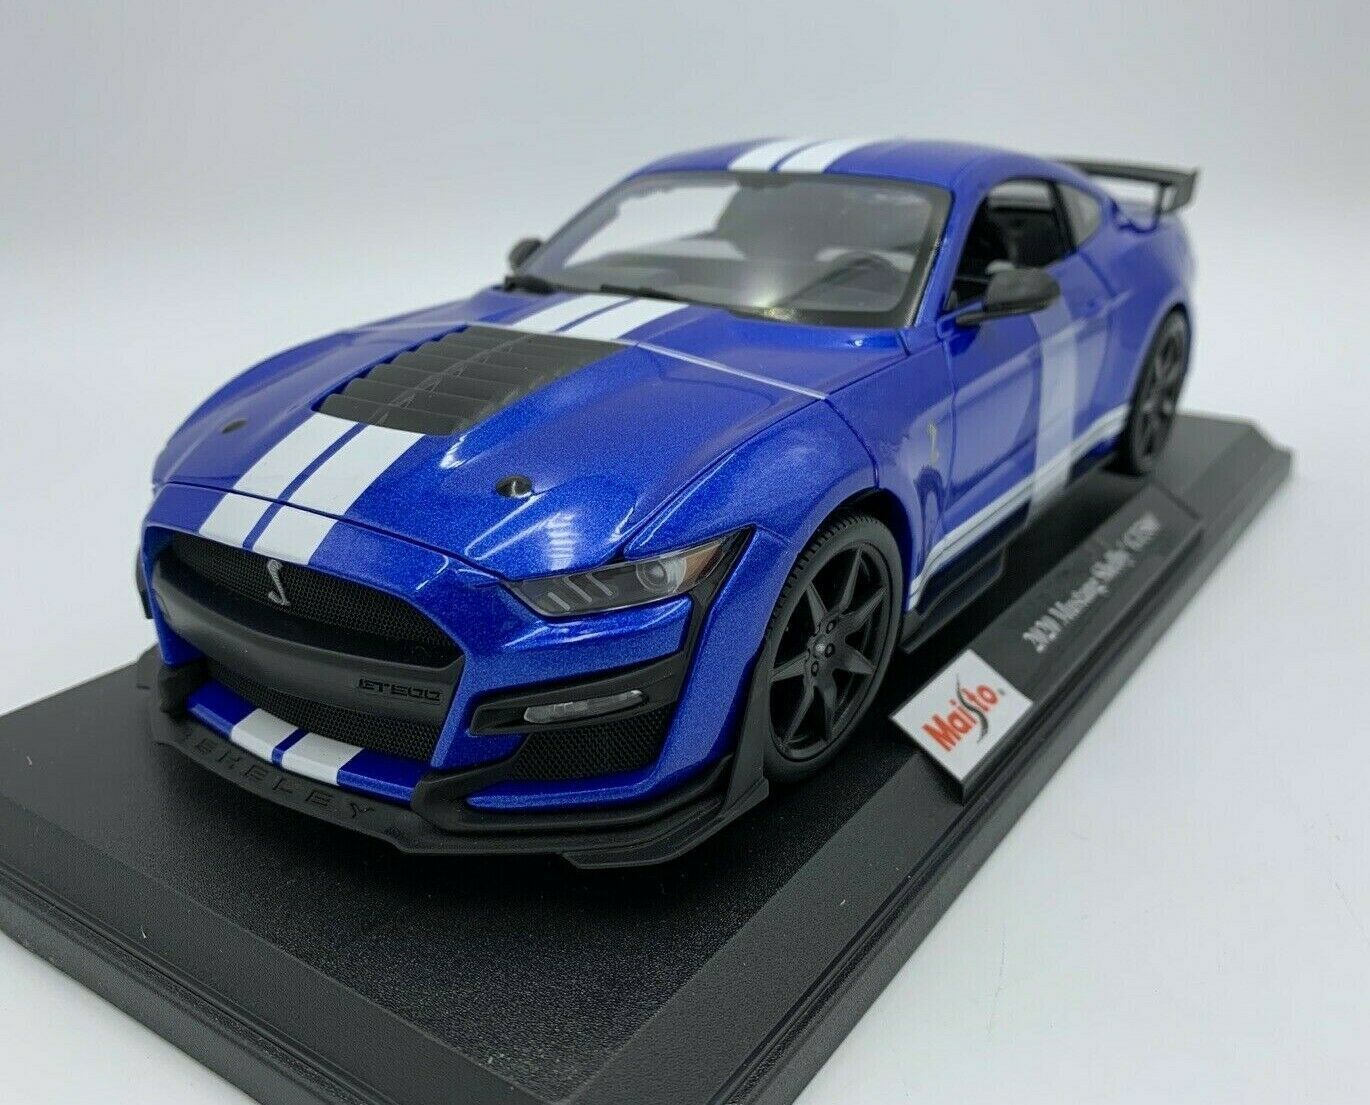 Primary image for 2020 Ford Mustang Shelby GT500 Blue Die Cast 1/18 Maisto Special Edition